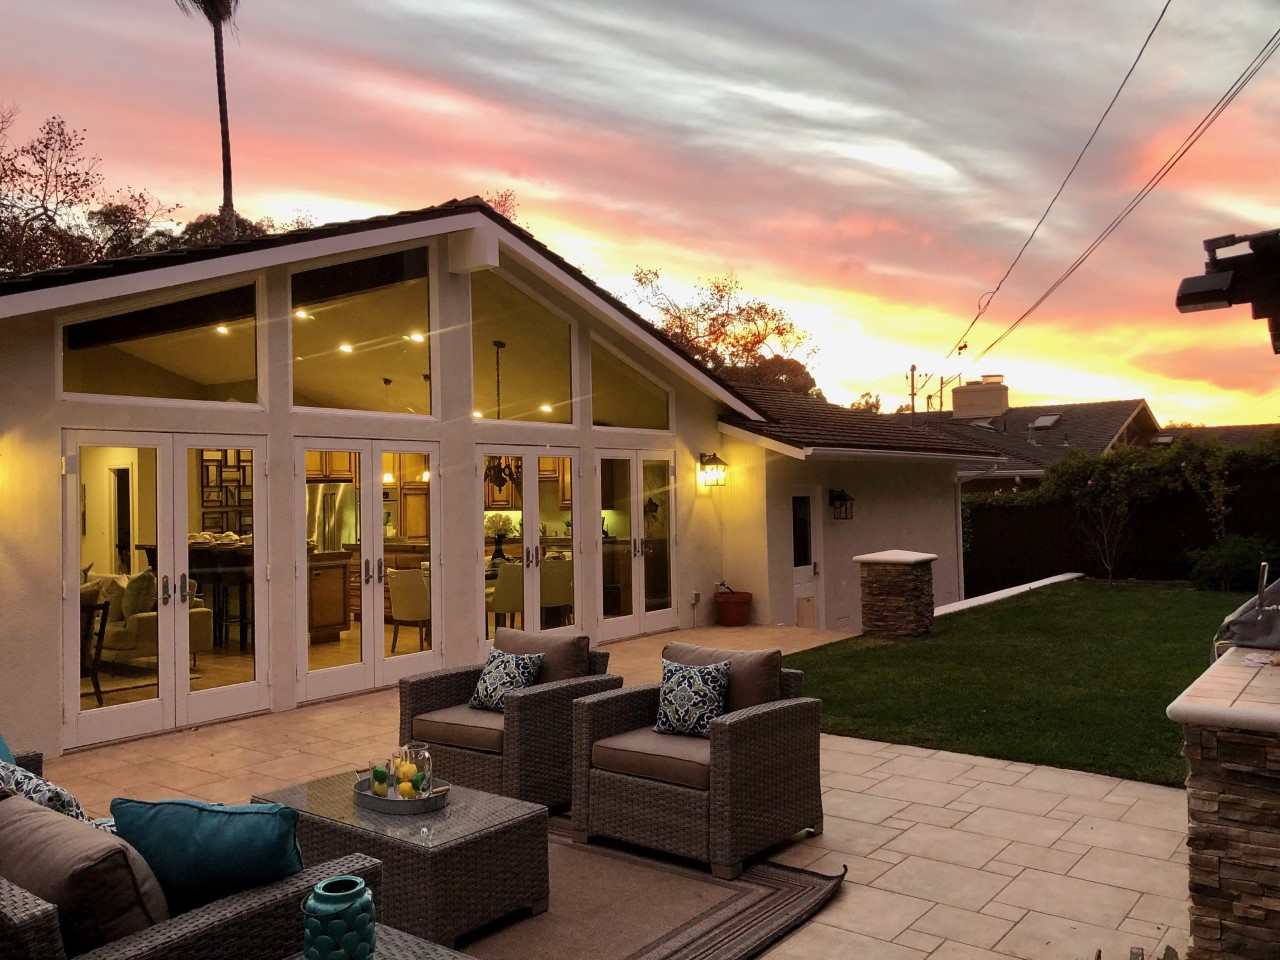 Hollywood Riviera One Level with a Zen/Beachy feel – You're gonna love this 3 bedroom/2 bathroom home that's got an amazing floor plan and backyard!!